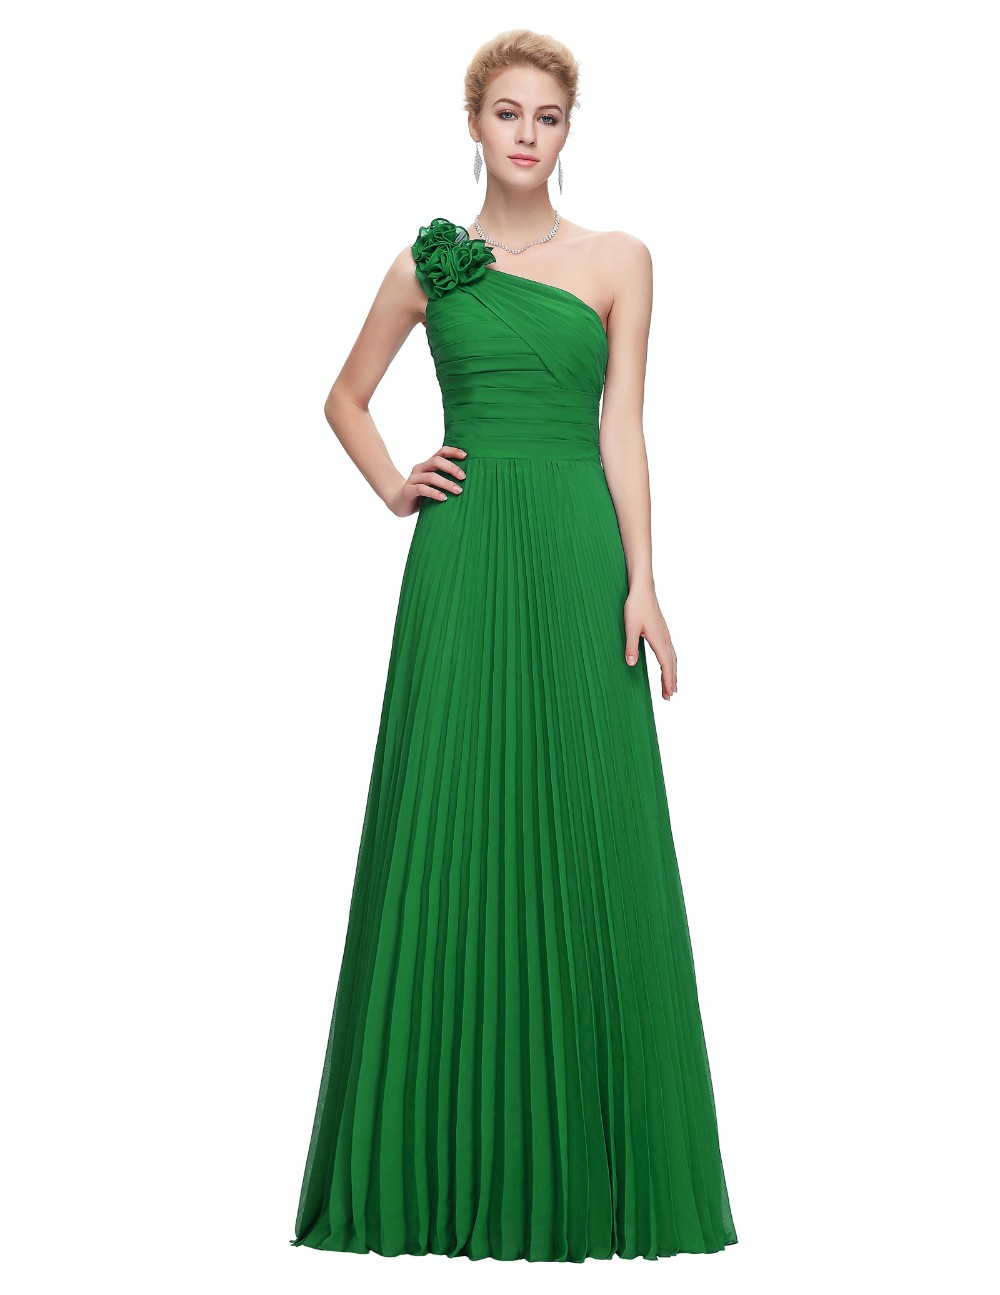 Grace Karin Chiffon Long Evening Dress One Shoulder Pleated Red Green Purple Royal Blue Formal Evening Dress Party Gowns 2018 15